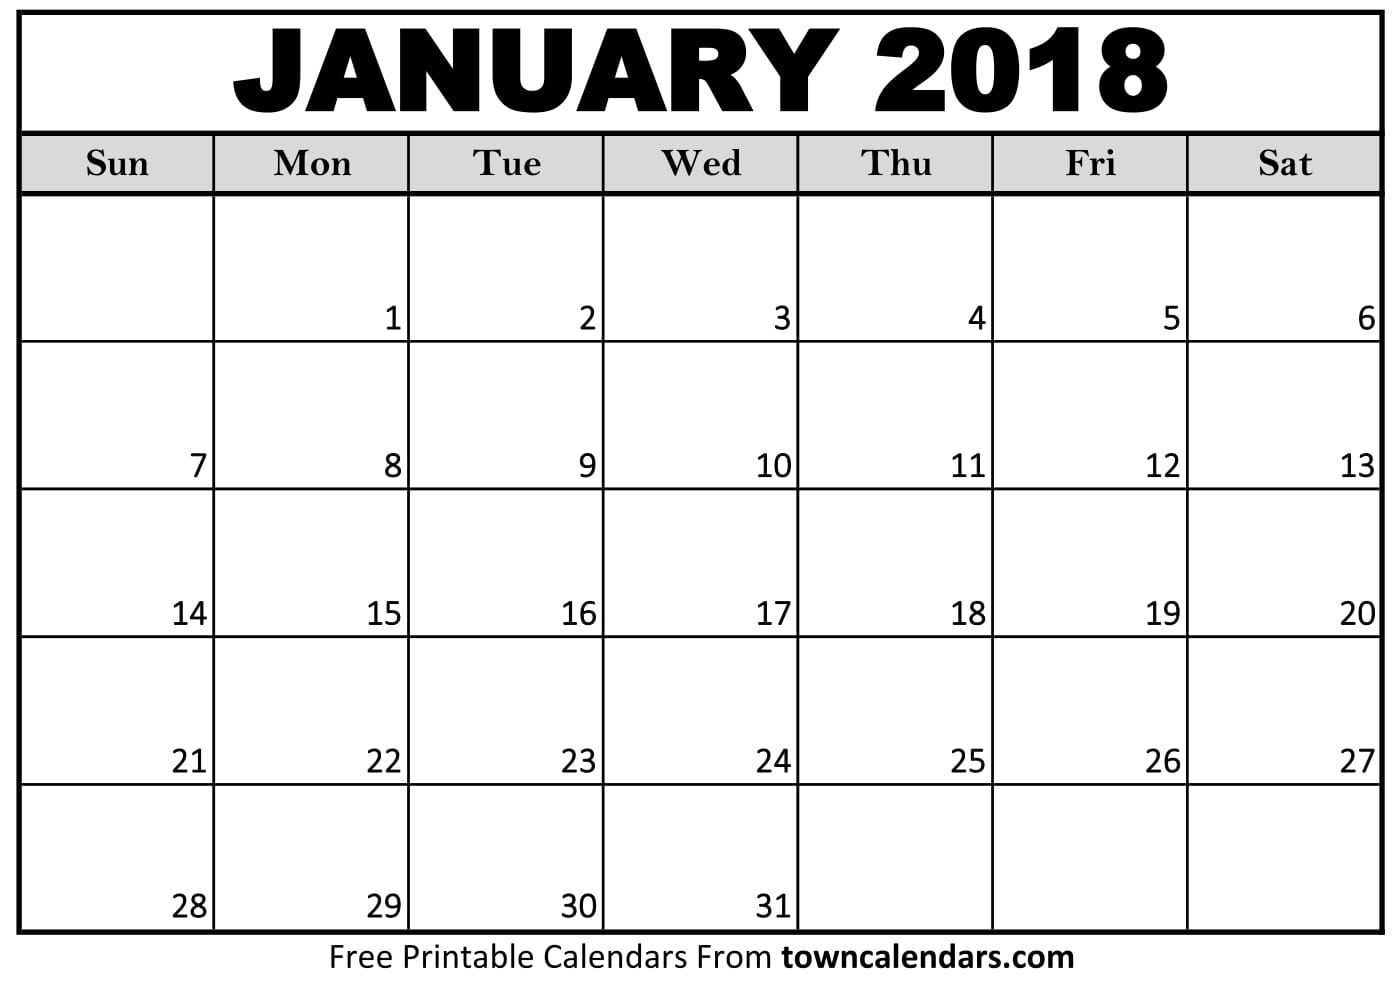 Jan Monthly Calendar : January calendar pdf printable template with holidays